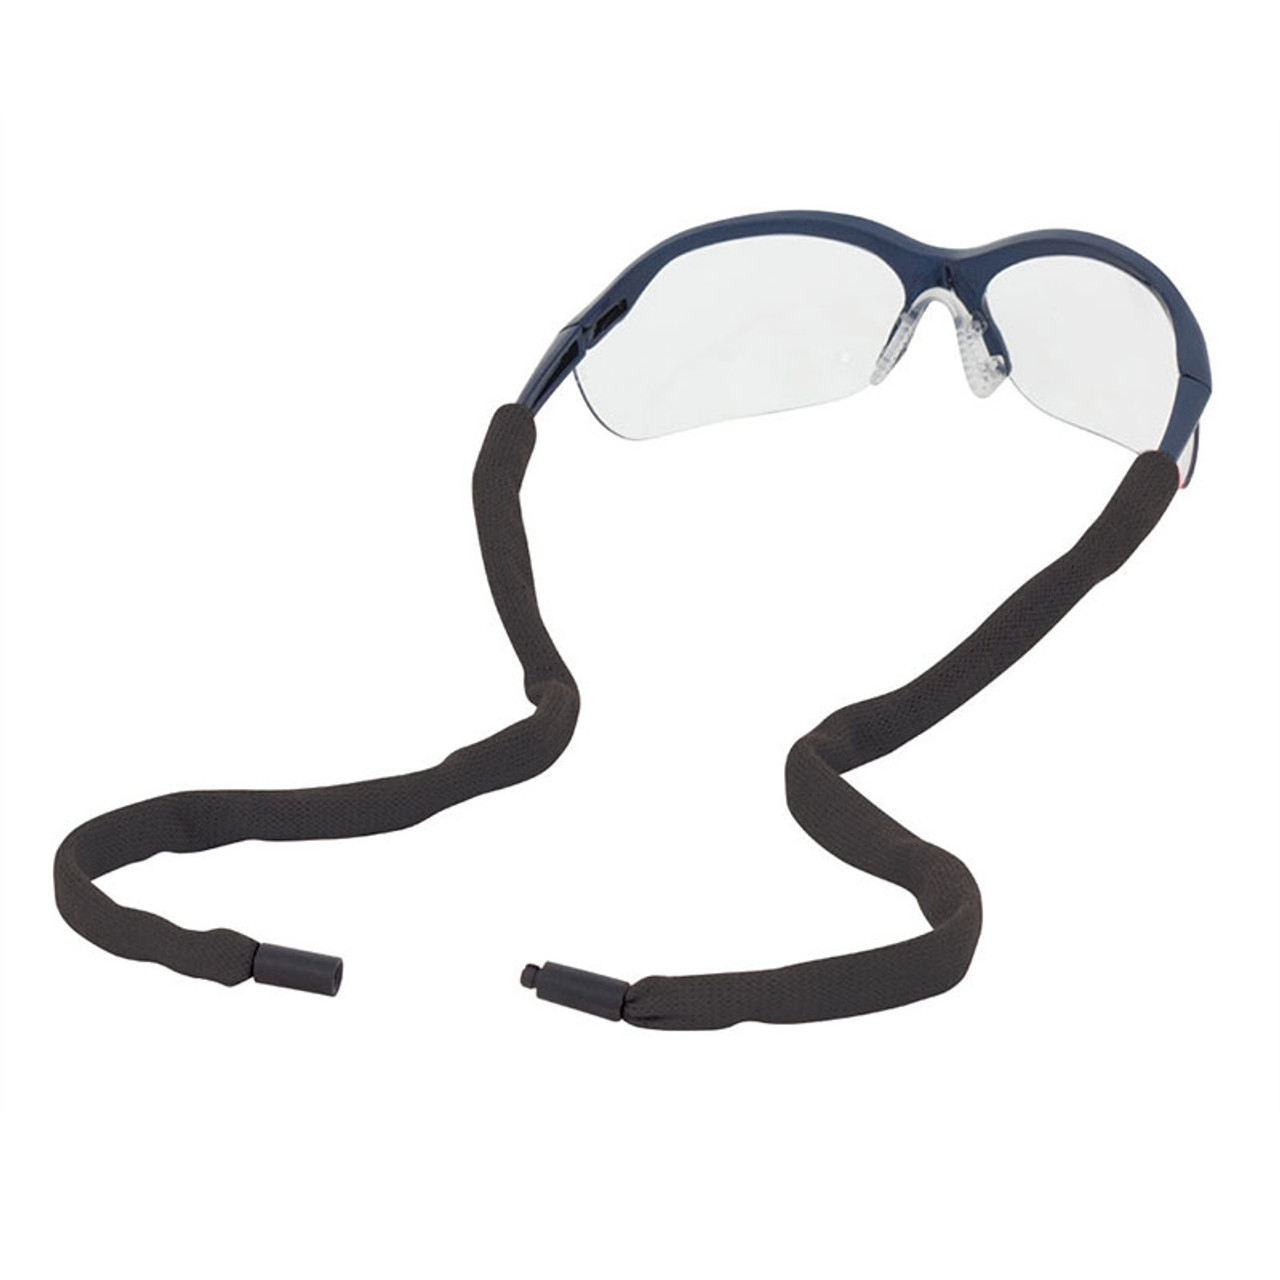 ONE Chums Switchback Silicone Eyeglass Retainers 1 GREAT NEW